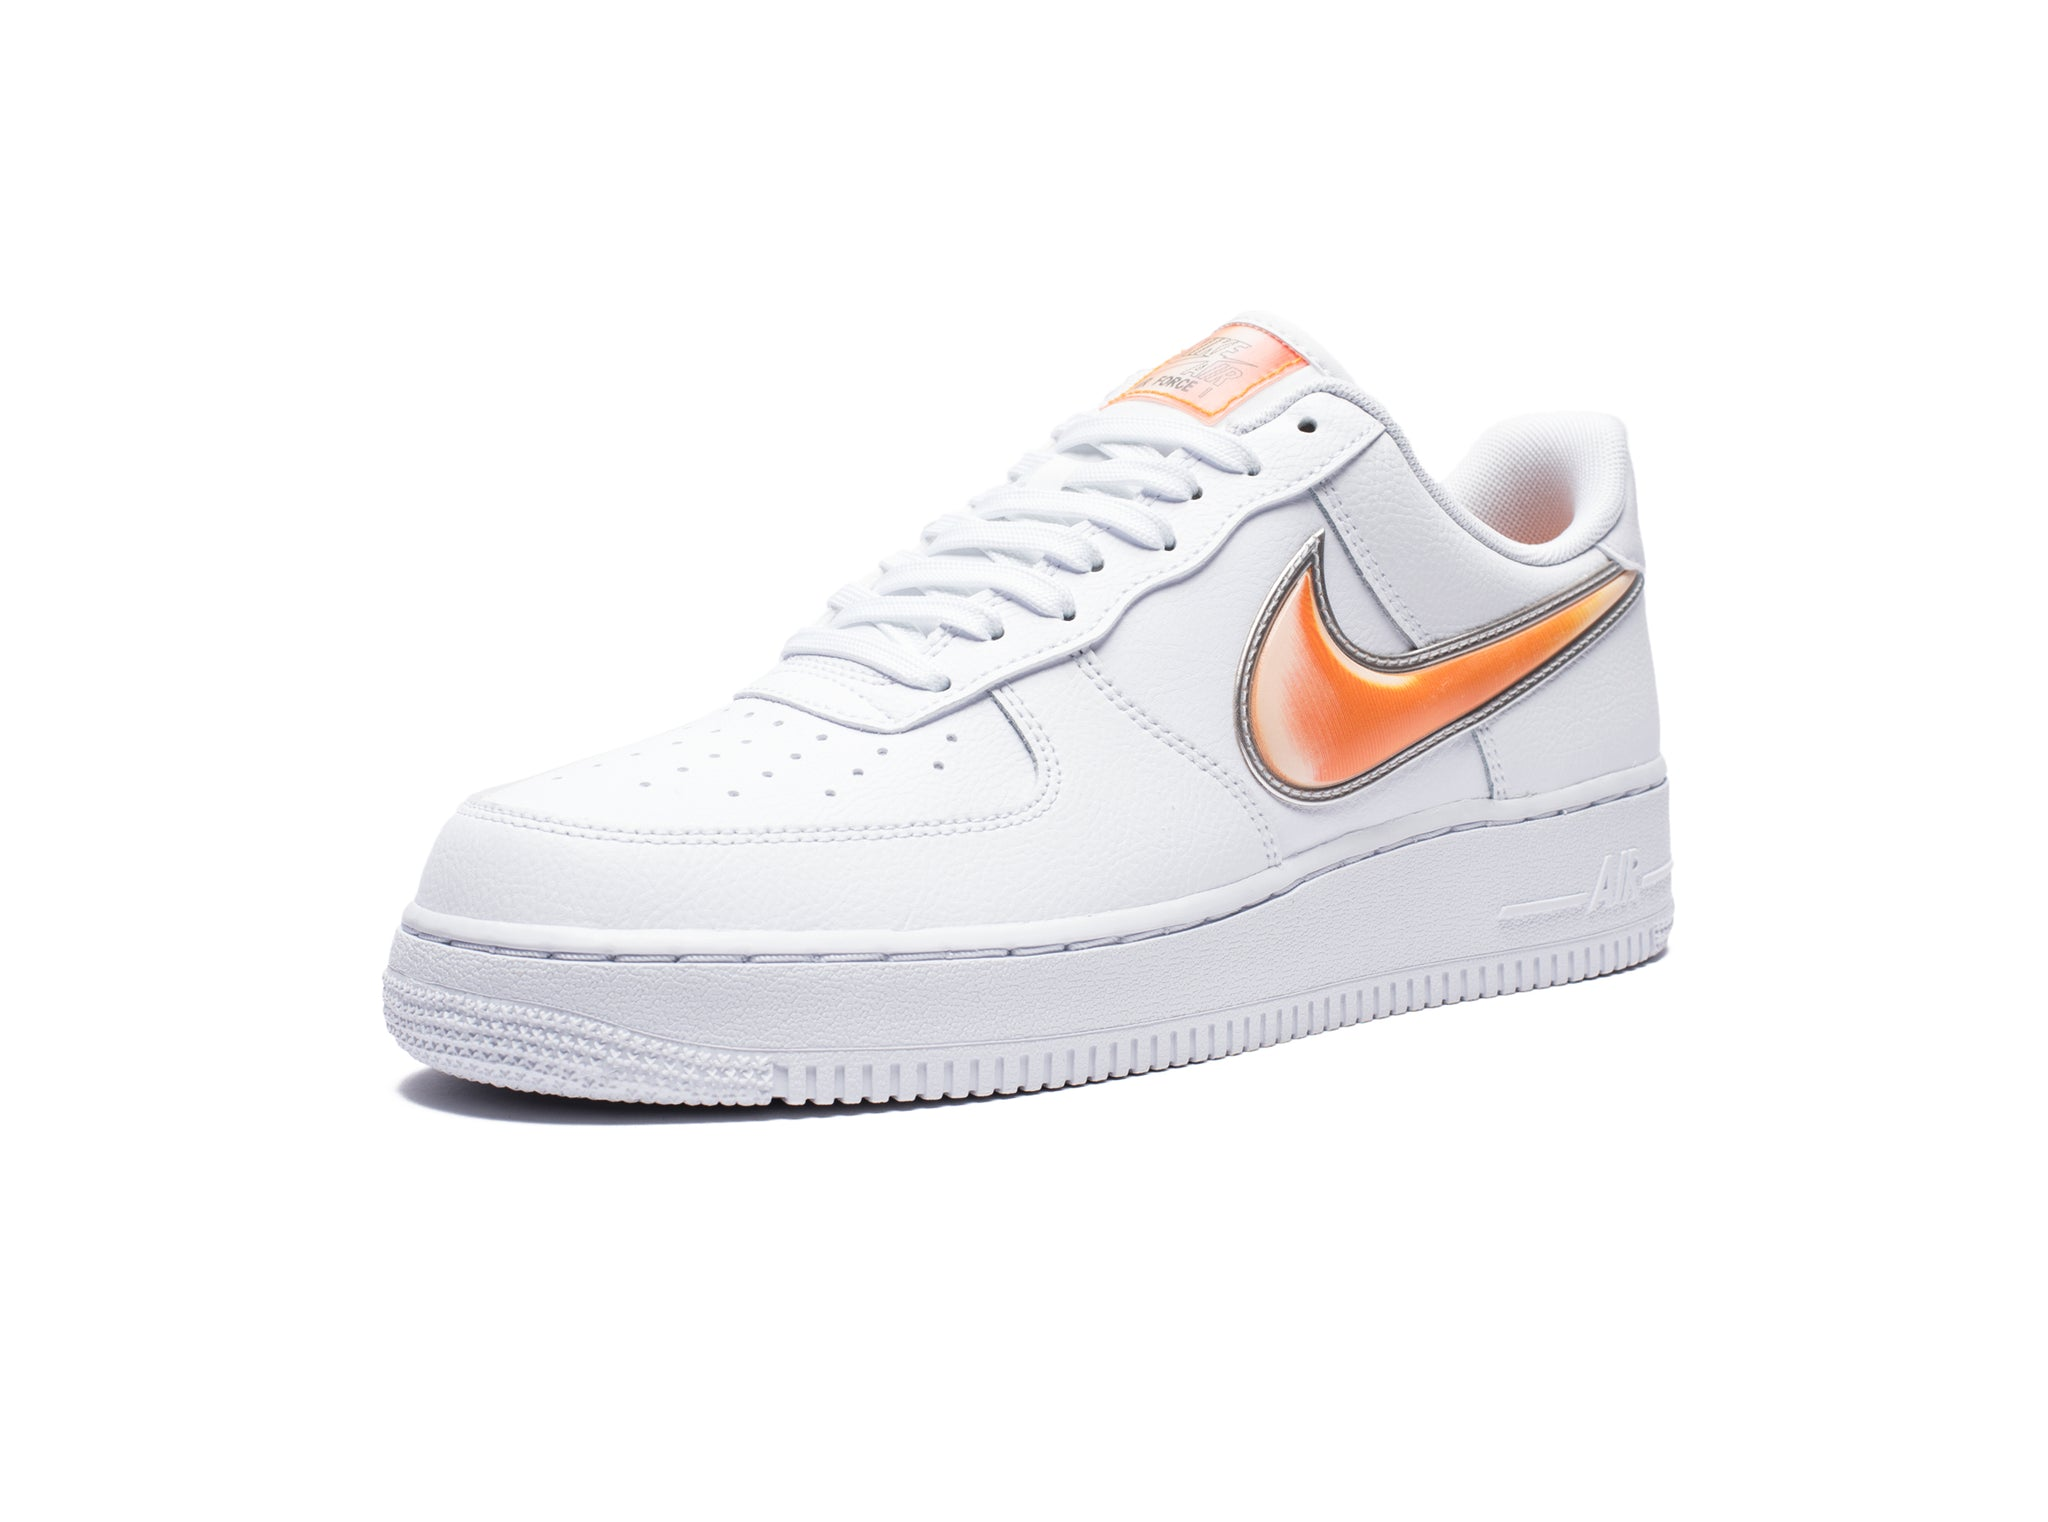 AIR FORCE 1 '07 LV8 3 - WHITE/ORANGEPEEL